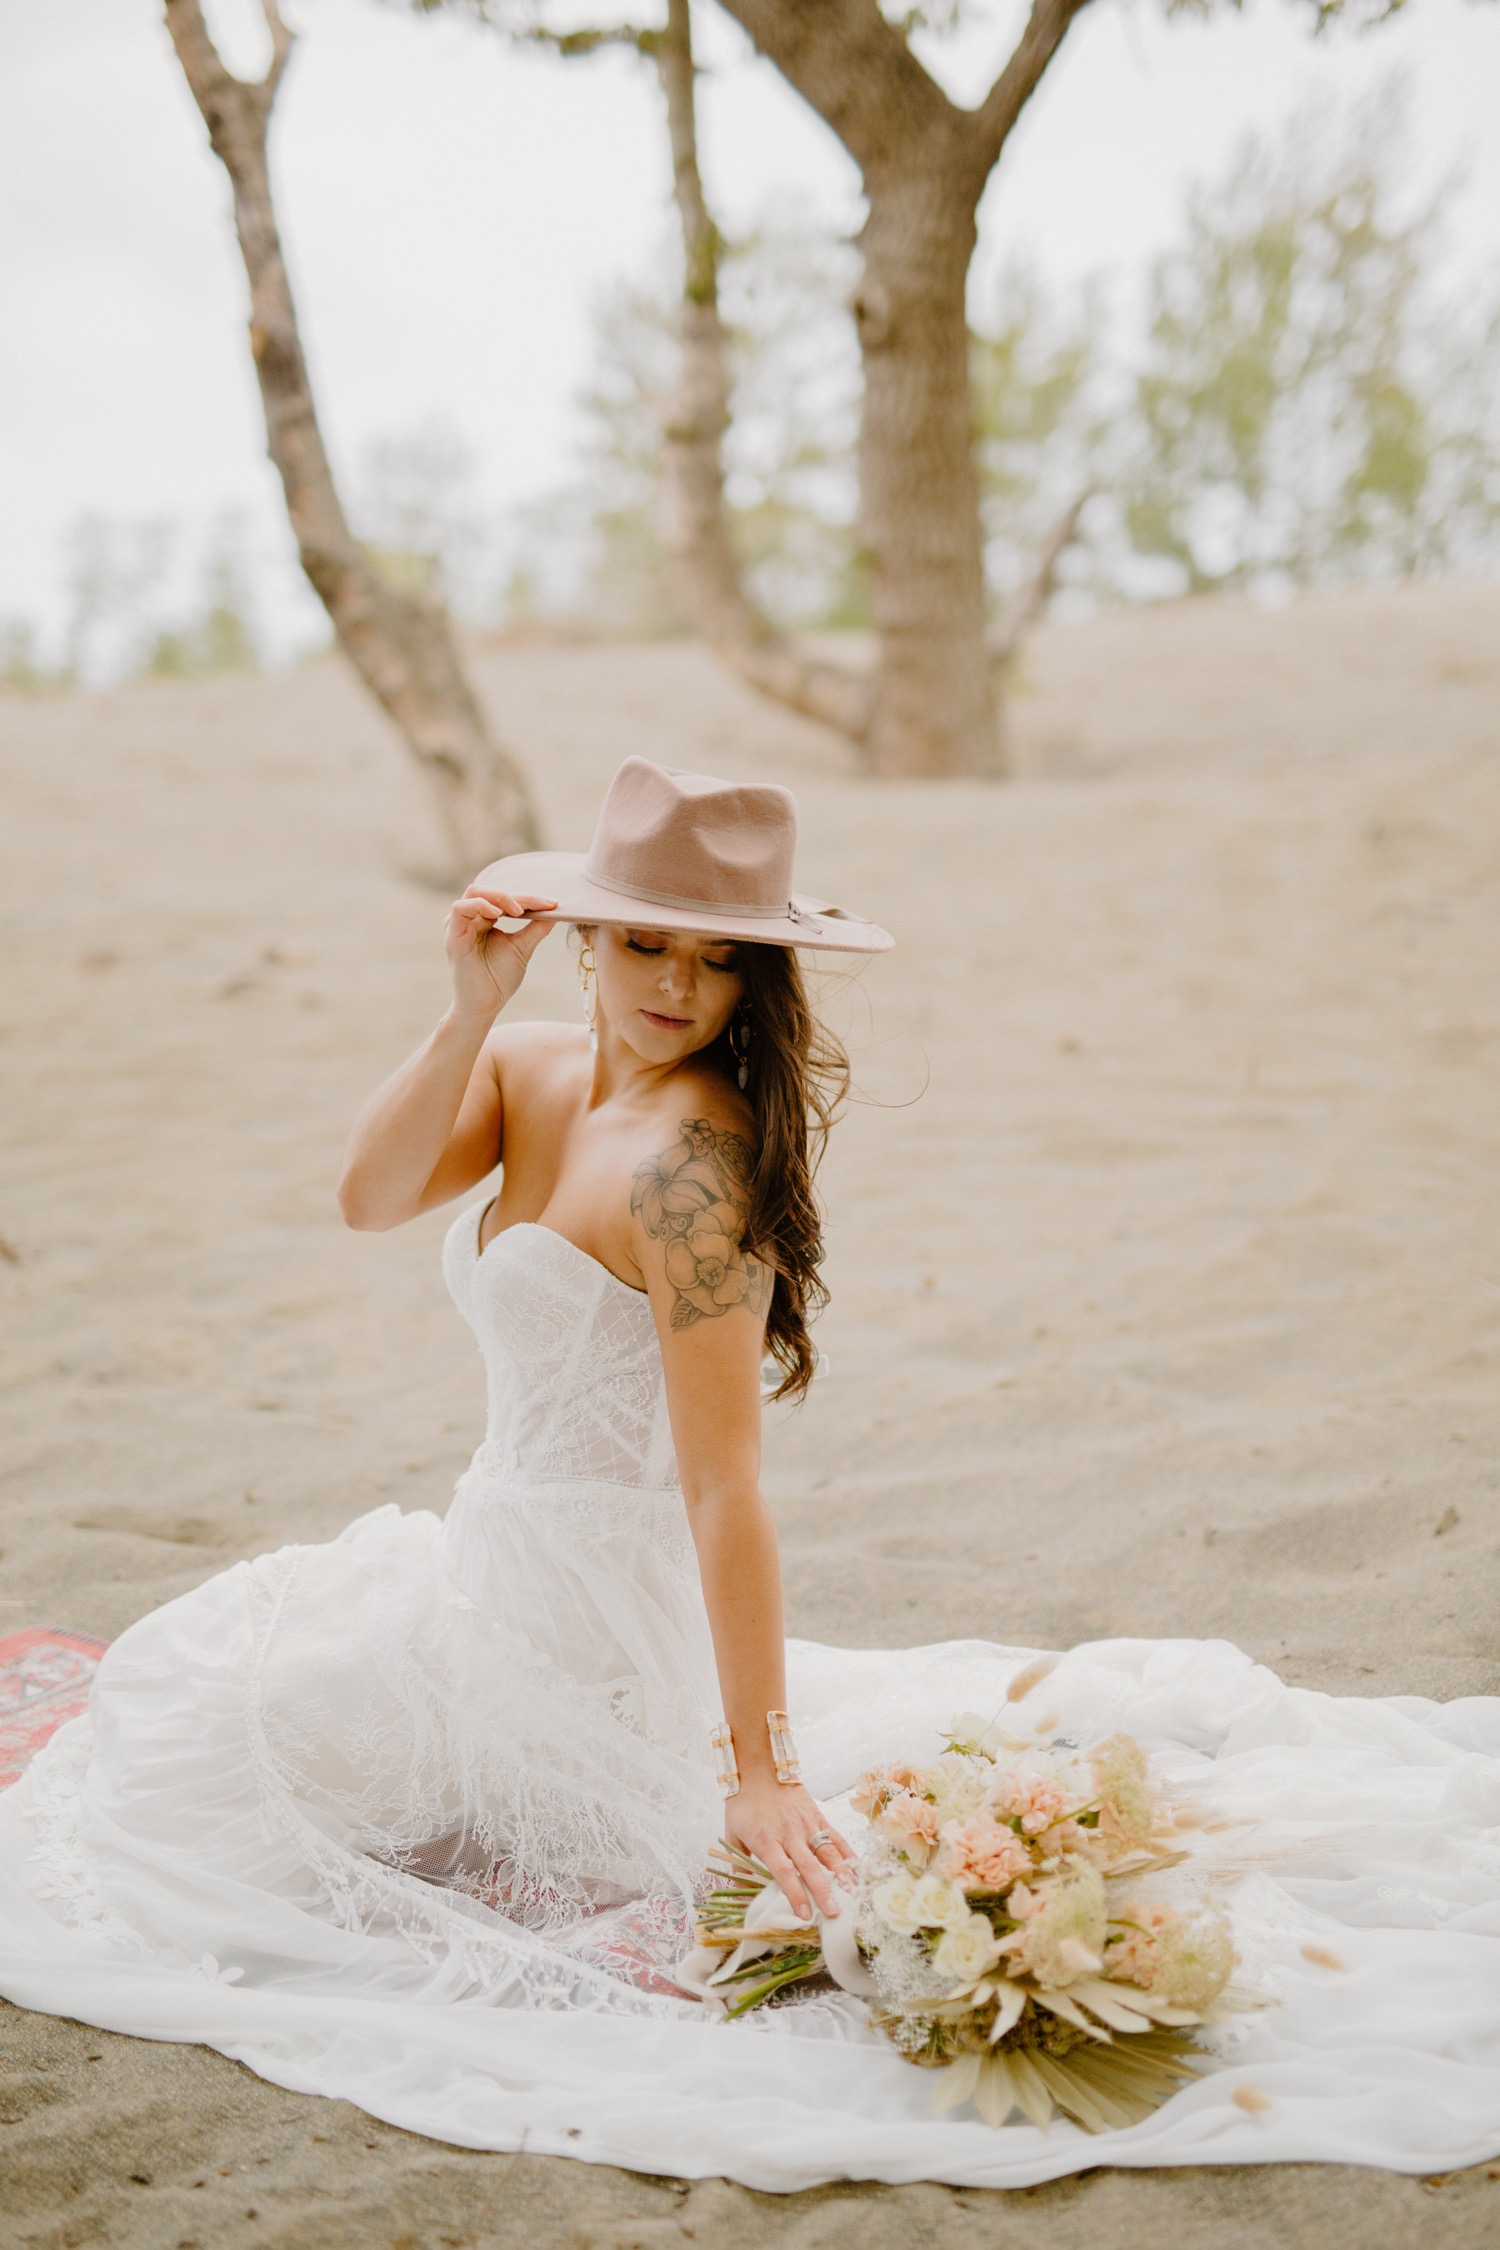 Pampas Grass Bridal Inspiration North Carolina Elopement Photographer Juliana Renee Photography